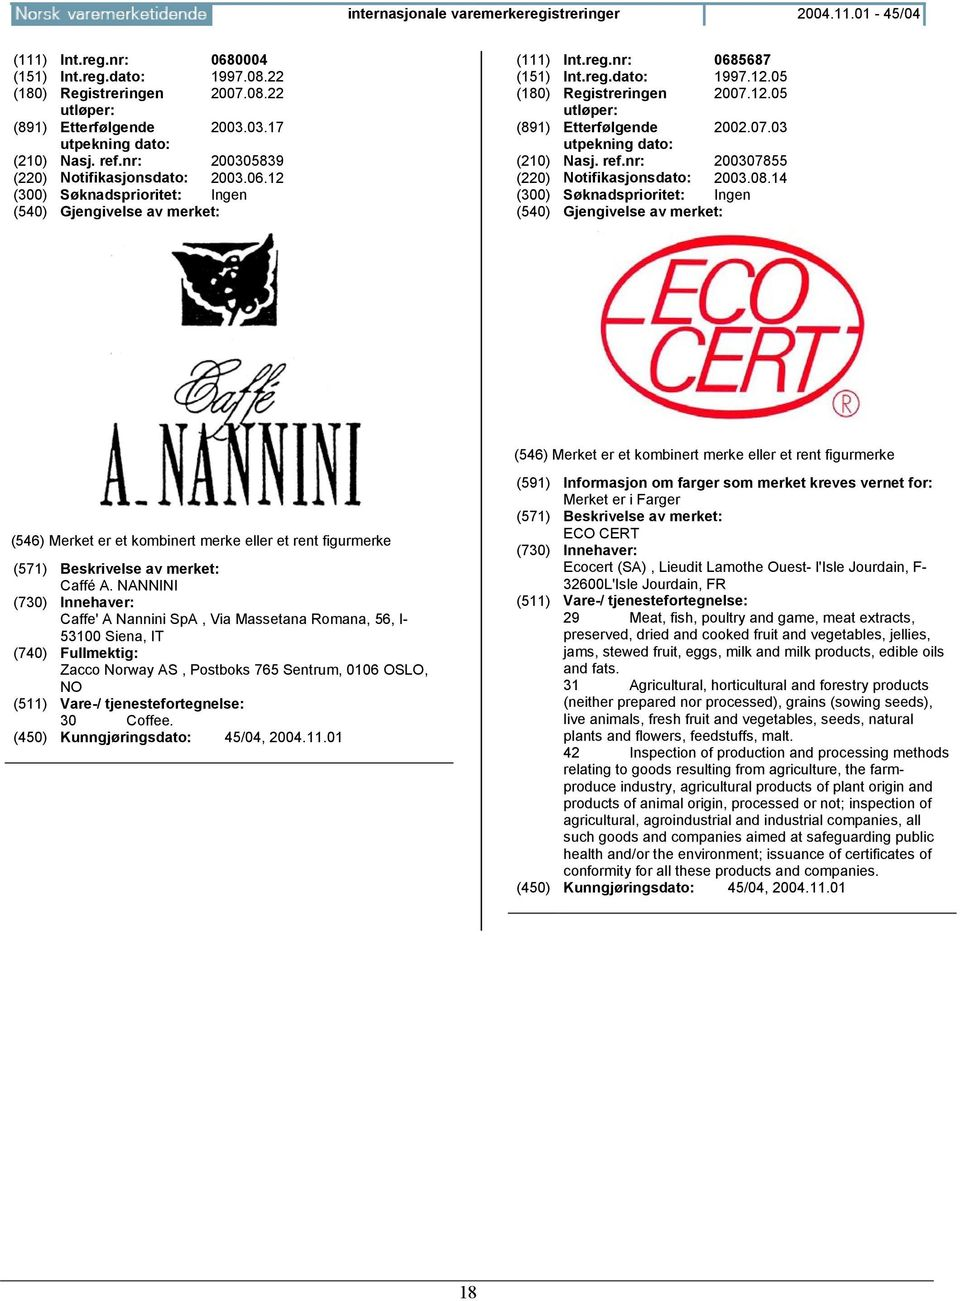 NANNINI Caffe' A Nannini SpA, Via Massetana Romana, 56, I- 53100 Siena, IT (740) Fullmektig: Zacco Norway AS, Postboks 765 Sentrum, 0106 OSLO, NO 30 Coffee.